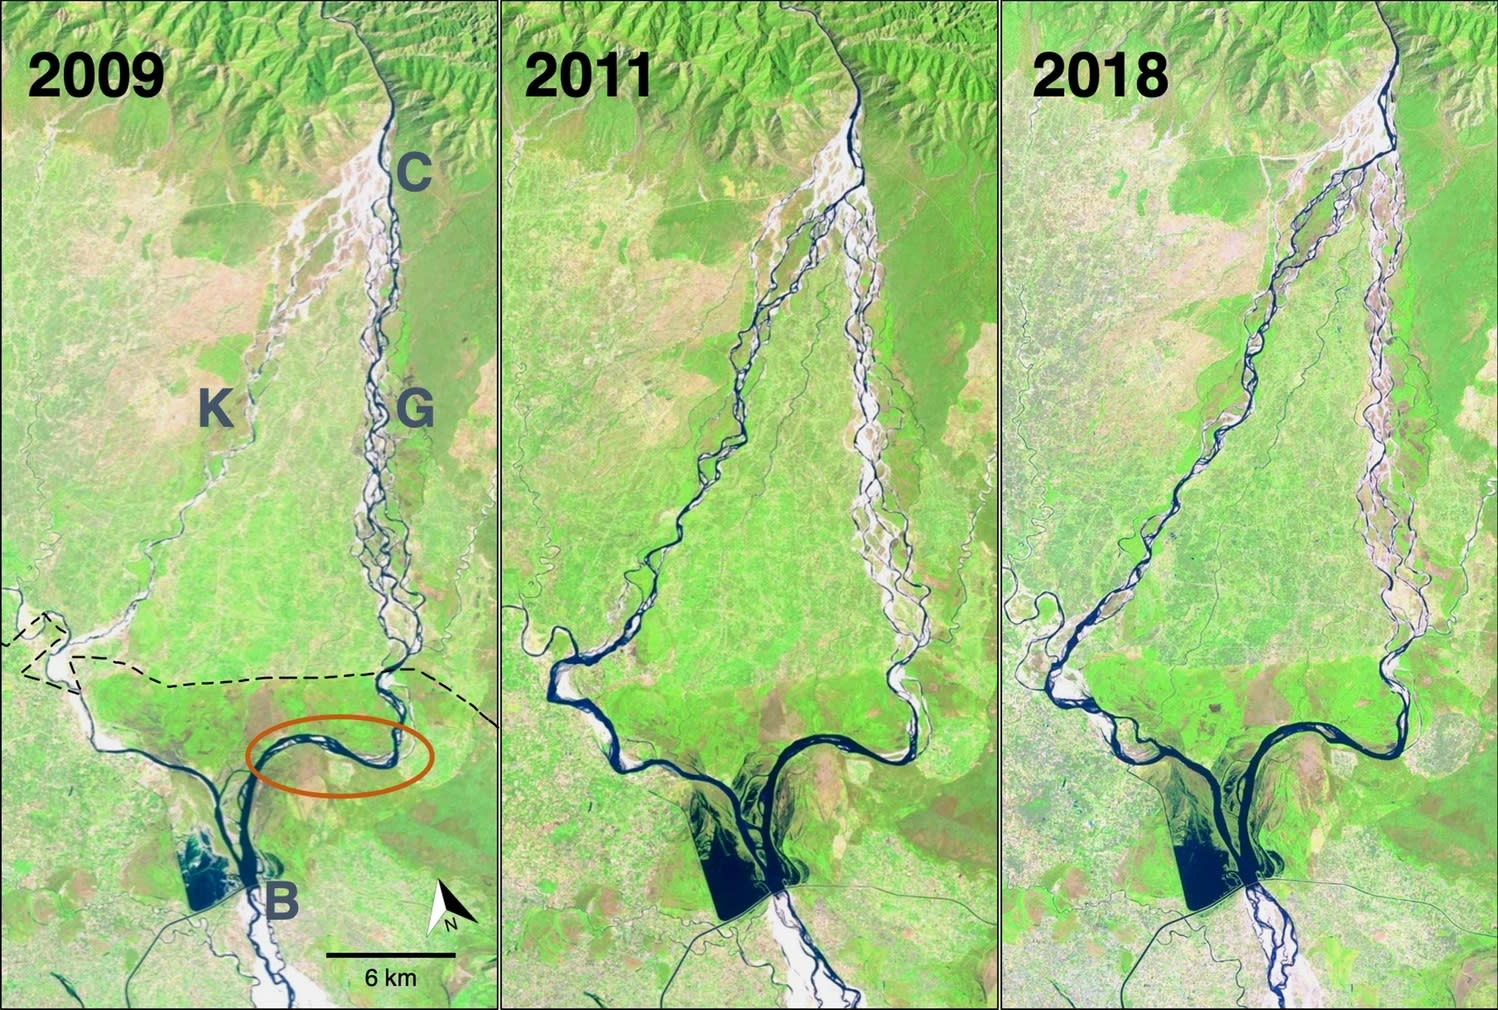 Satellite images before (2009; left panel) and after (2011 and 2018; middle and right panels) a flood event in 2010 in Karnali river channels, Nepal. The flood resulted in a mainstream channel shift from east (right side,=G, Geruwa channel in Nepal) to west (left side,=K, Karnali channel in Nepal). Map from Vashistha et al. 2021.  Cover photo: Representational photograph of gharial hatchlings. Cover photo: Dhritiman Mukherjee